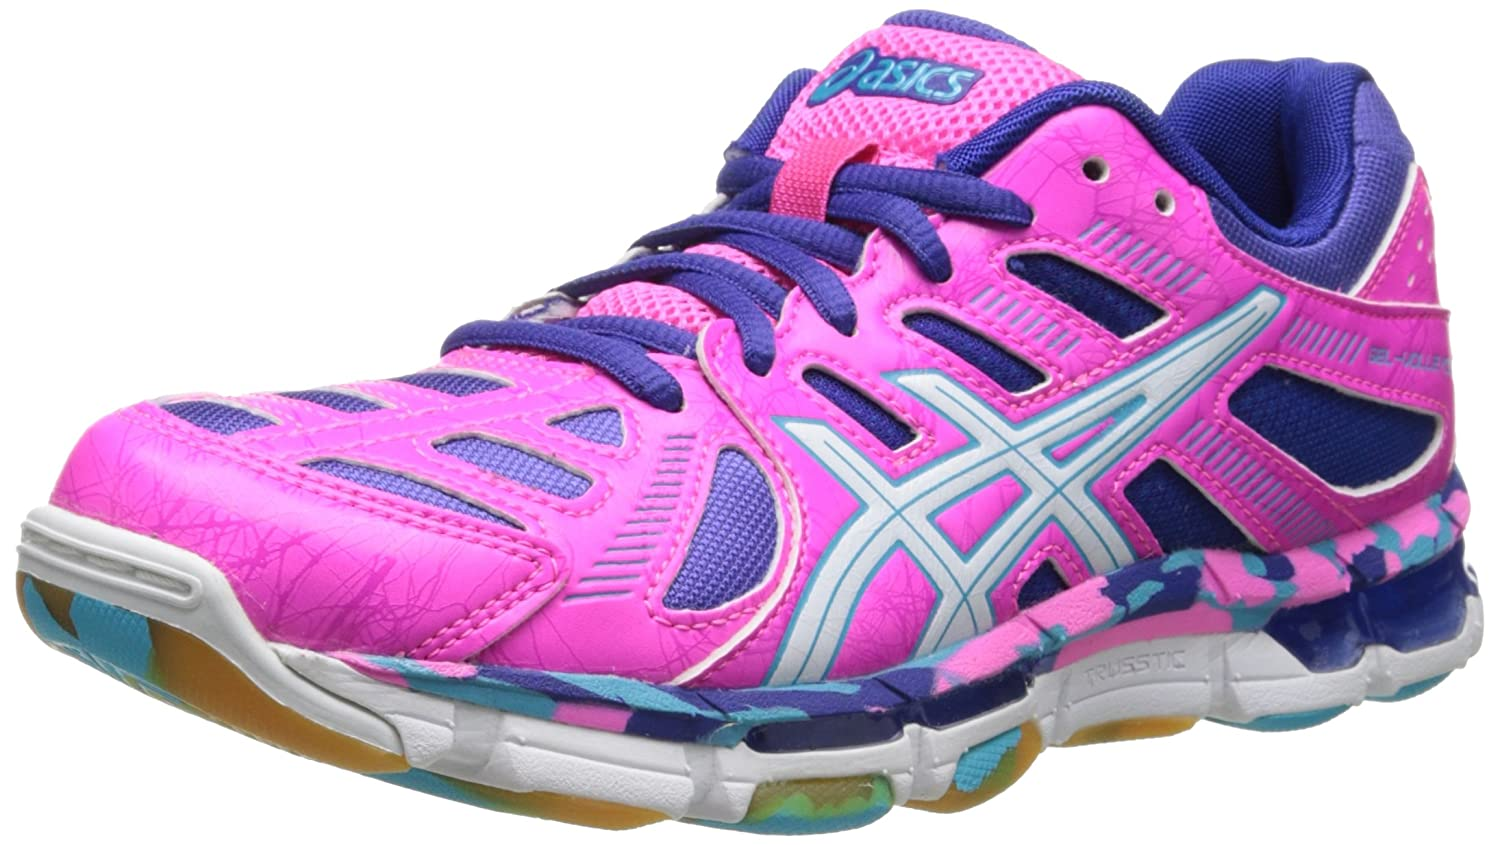 30a8571543f ASICS Gel-Volleycross Revolution Womens Netball Volleyball Shoes - Size  11  US or 27.5 cm - Color  Pink White  Amazon.com.au  Fashion